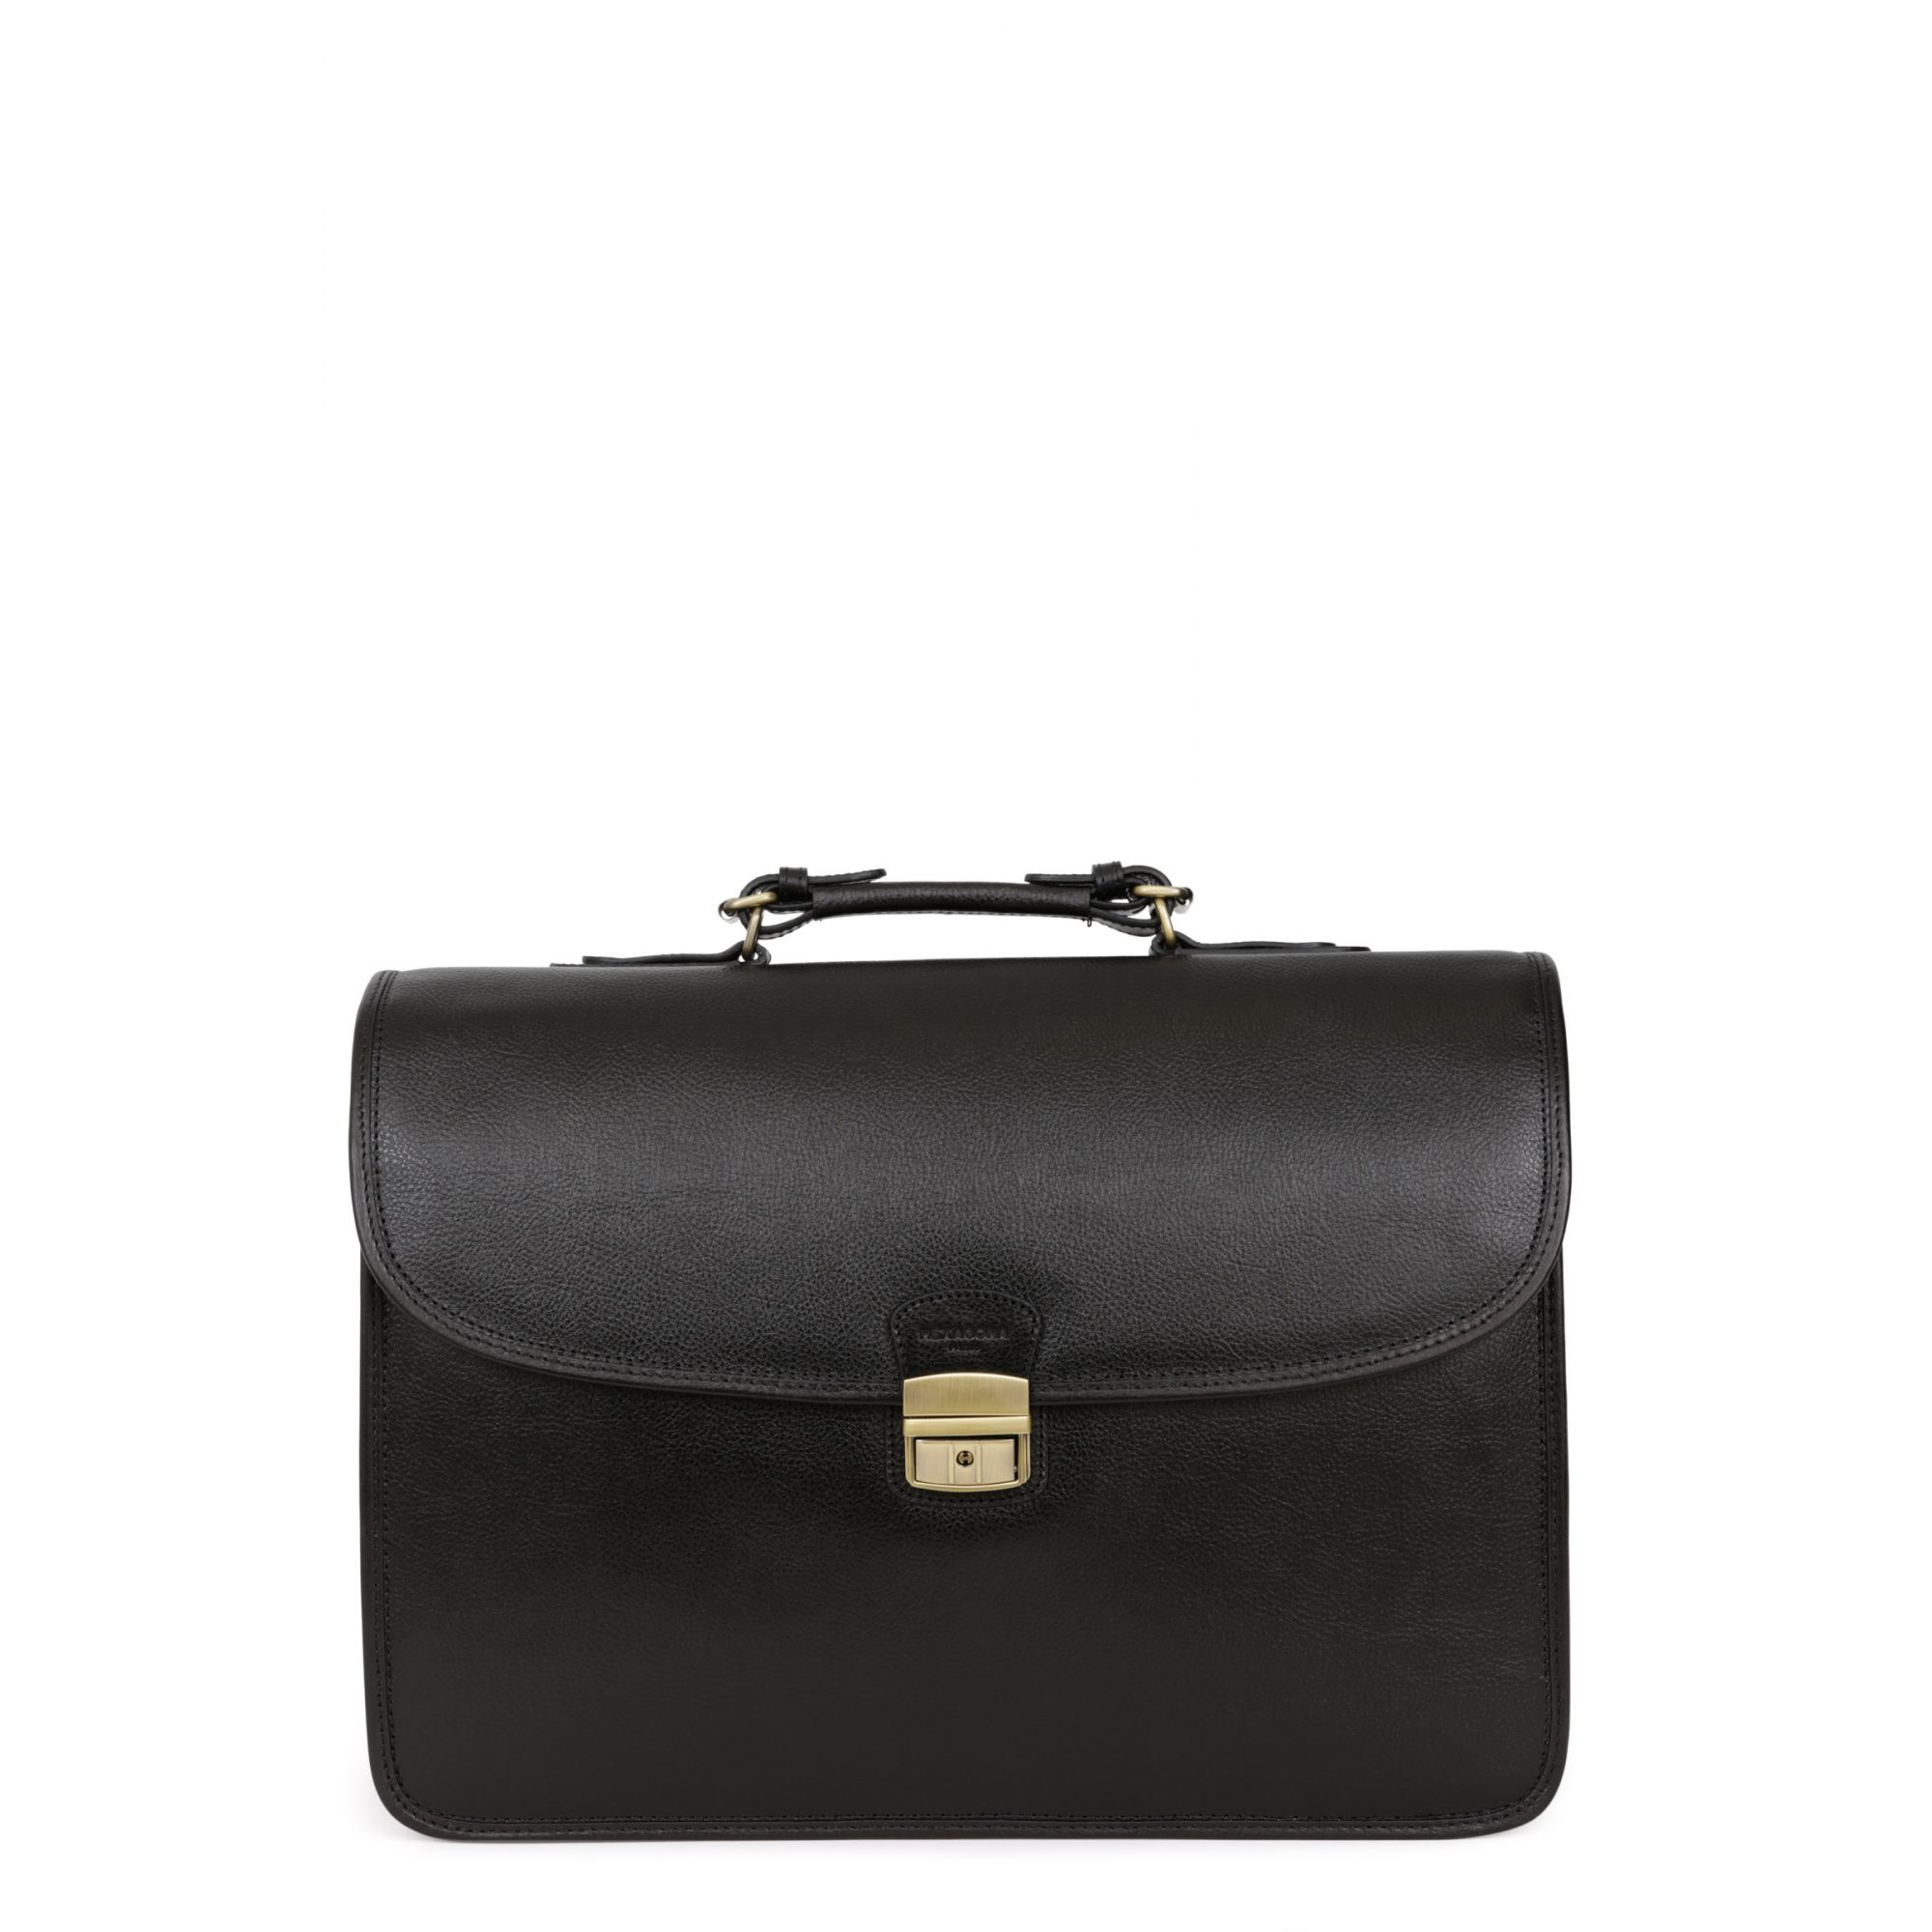 Leather 3 gussets satchel